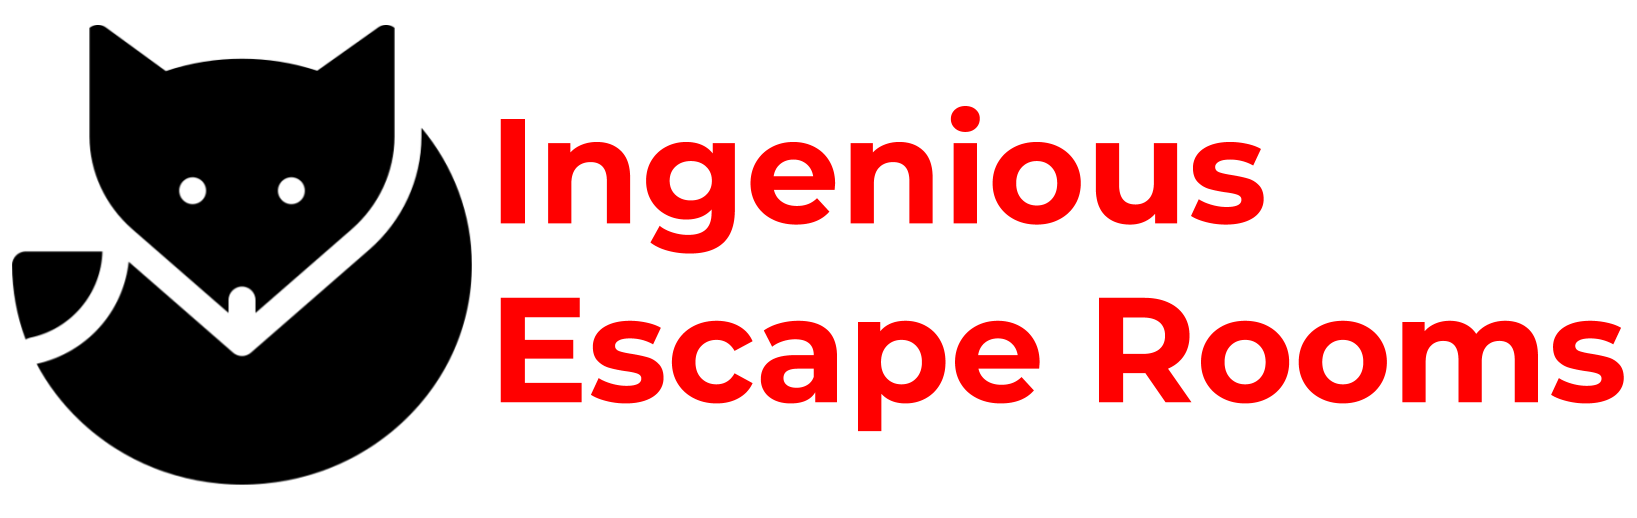 Ingenious Escape Rooms |   Ingenious logo (1)